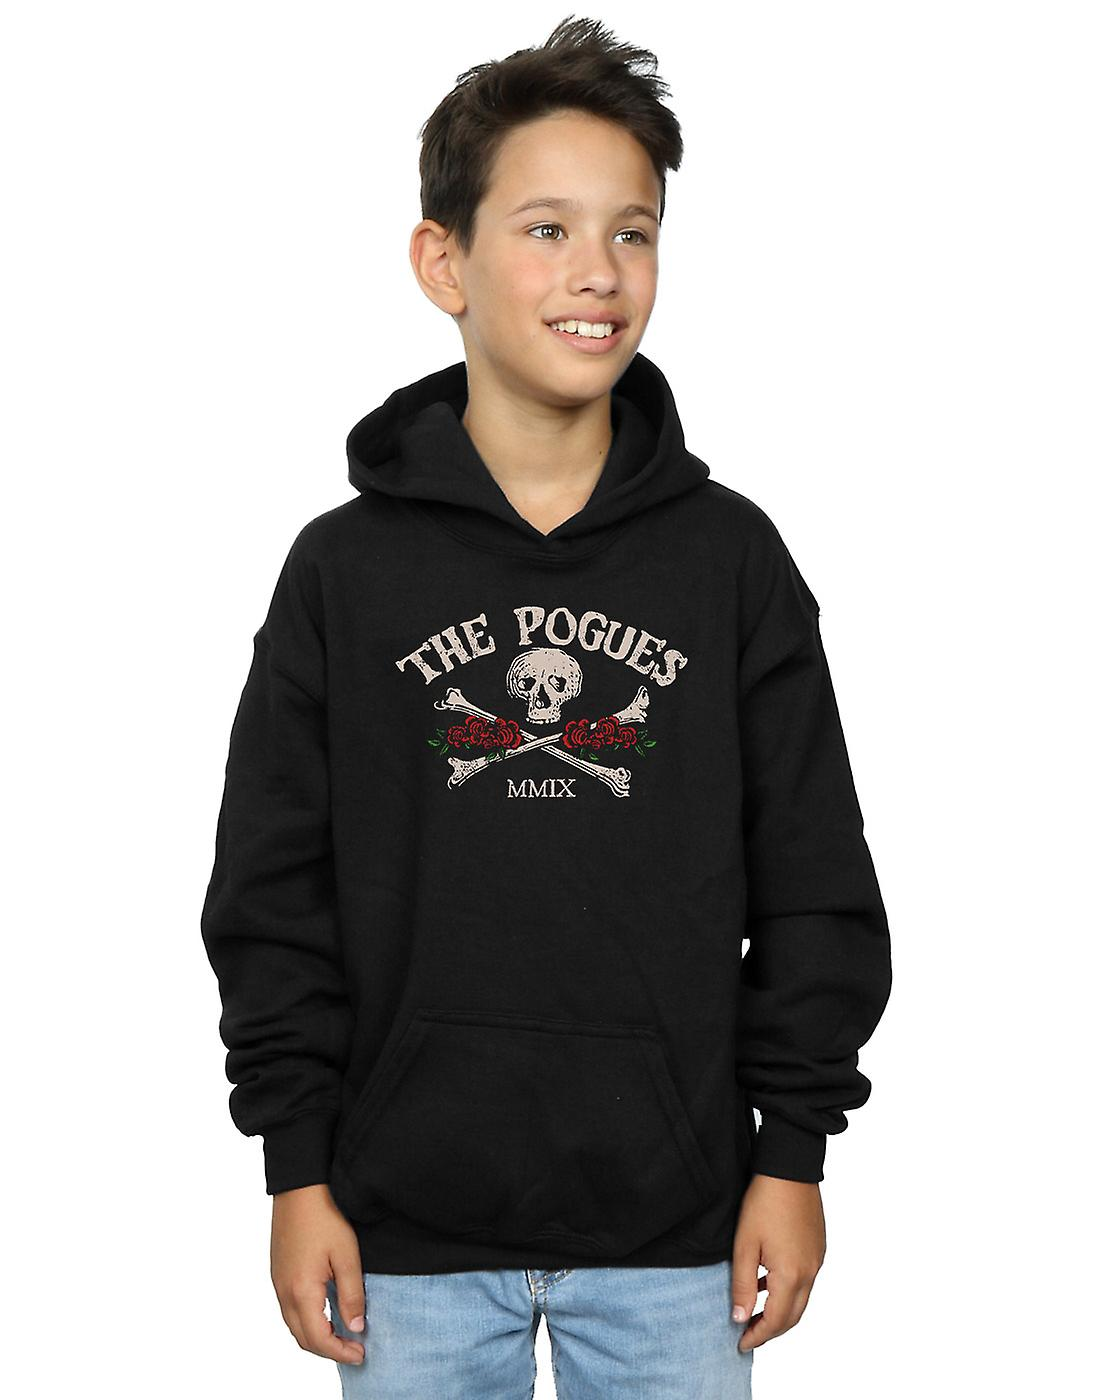 The Pogues Boys Skull MMIX Hoodie